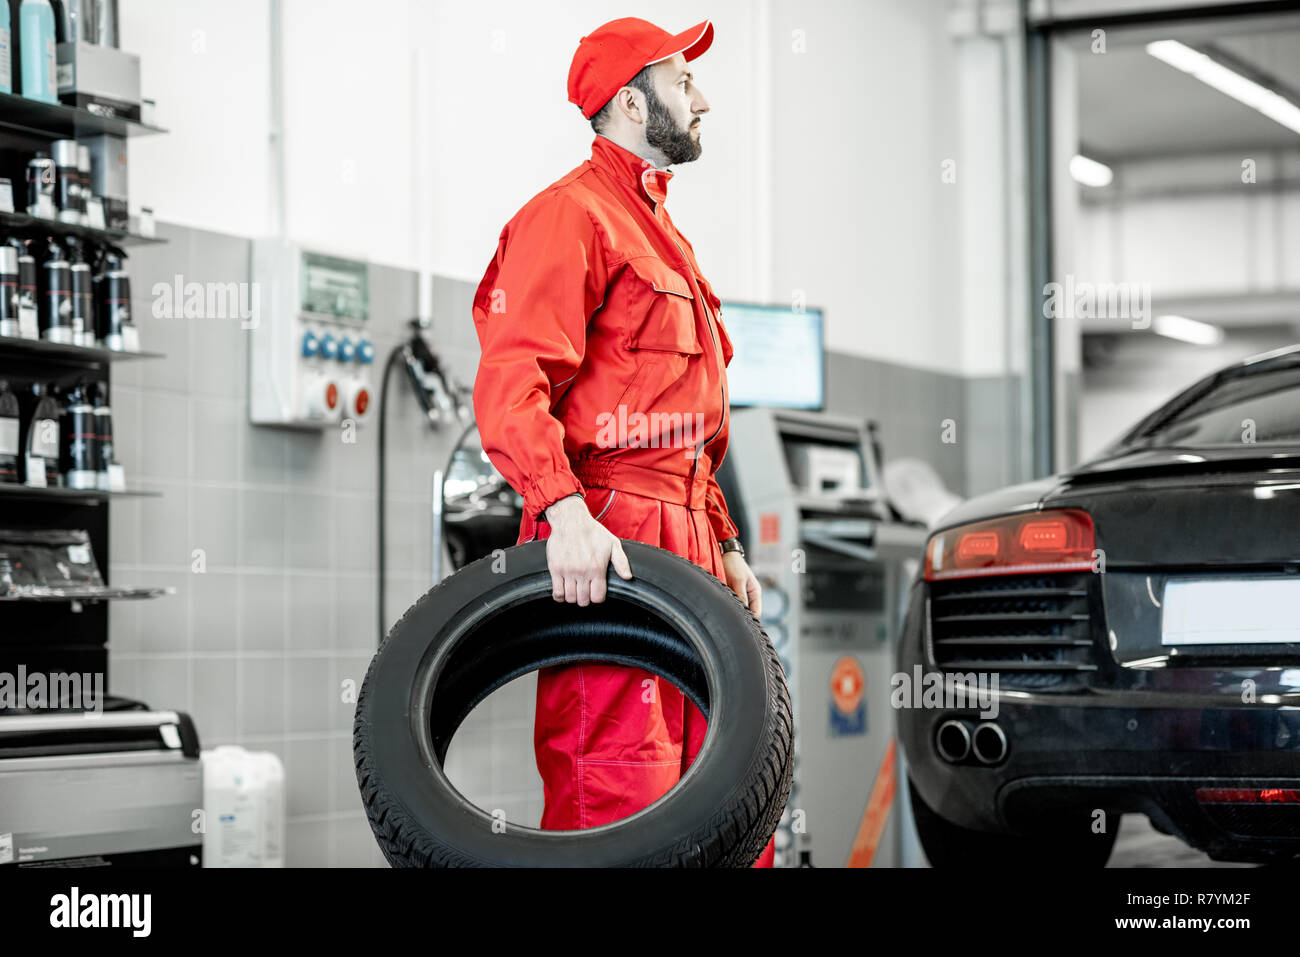 Car Service Worker In Red Uniform Carrying New Tires At The Tire